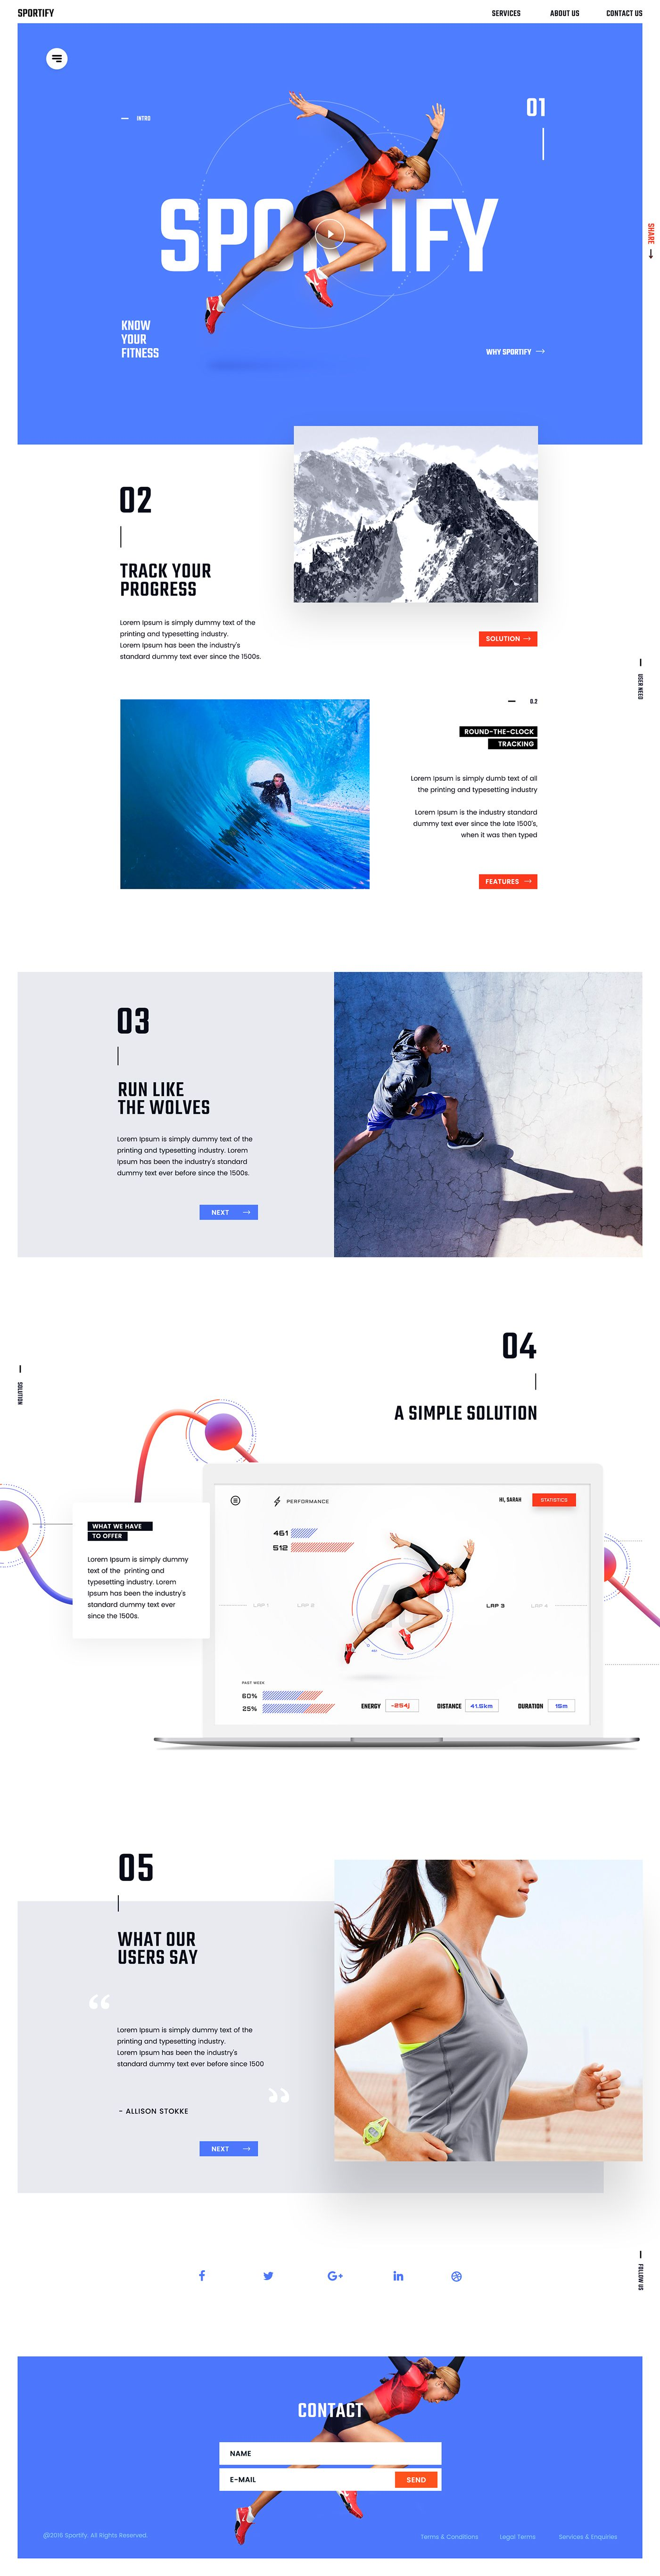 Sportify website landing page helping users understand features and functions of app tracking sports exercise activities also rh pinterest